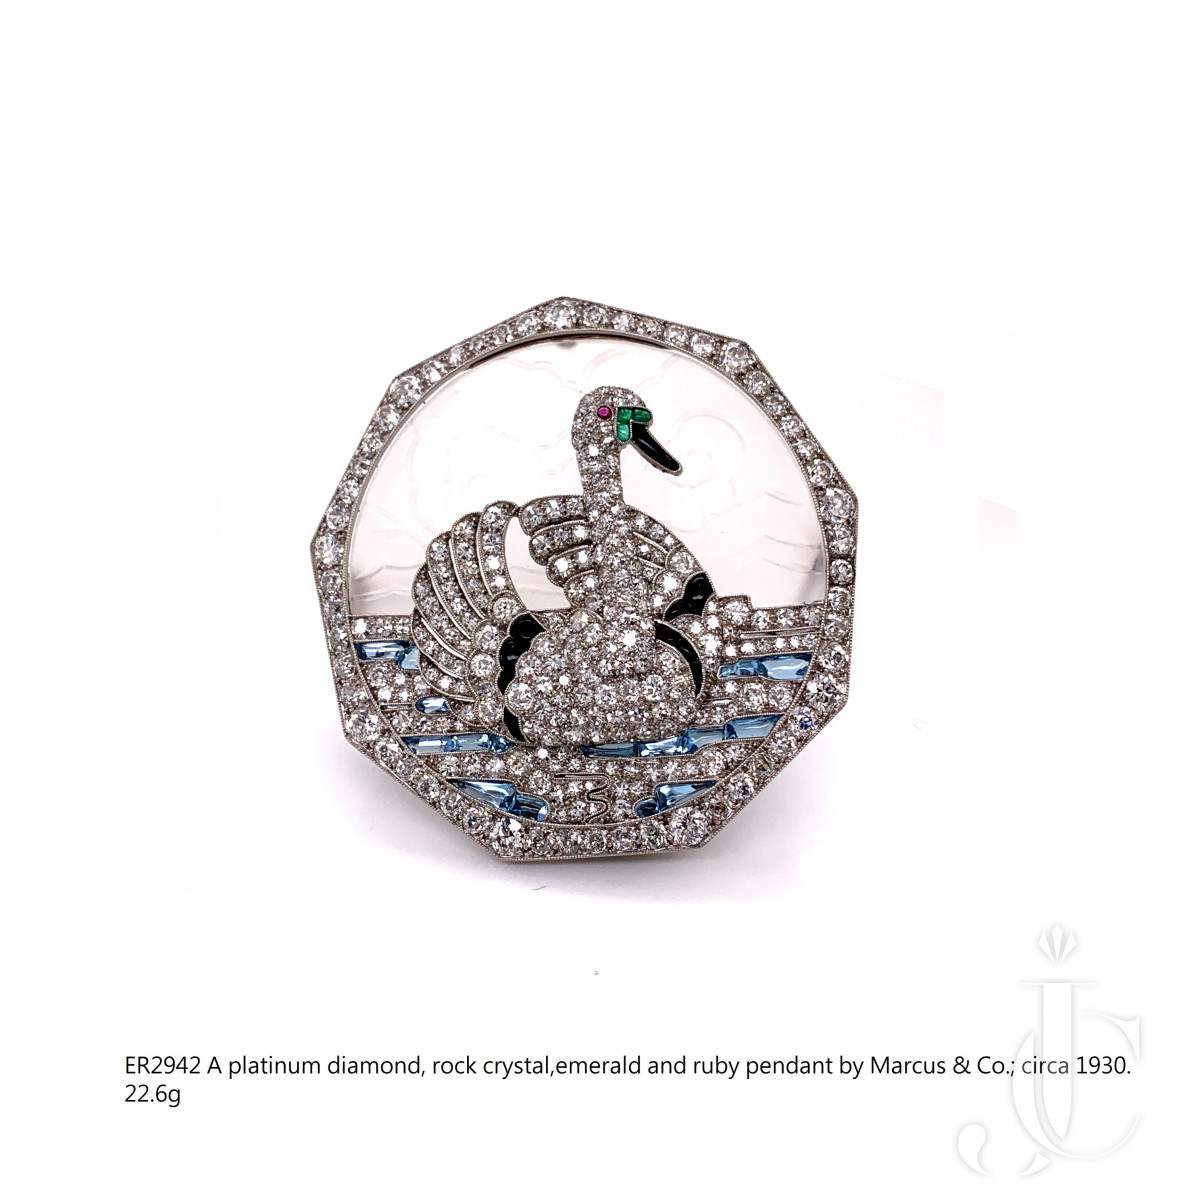 A platinum diamond, rock crystal,emerald and ruby pendant by Marcus & Co.